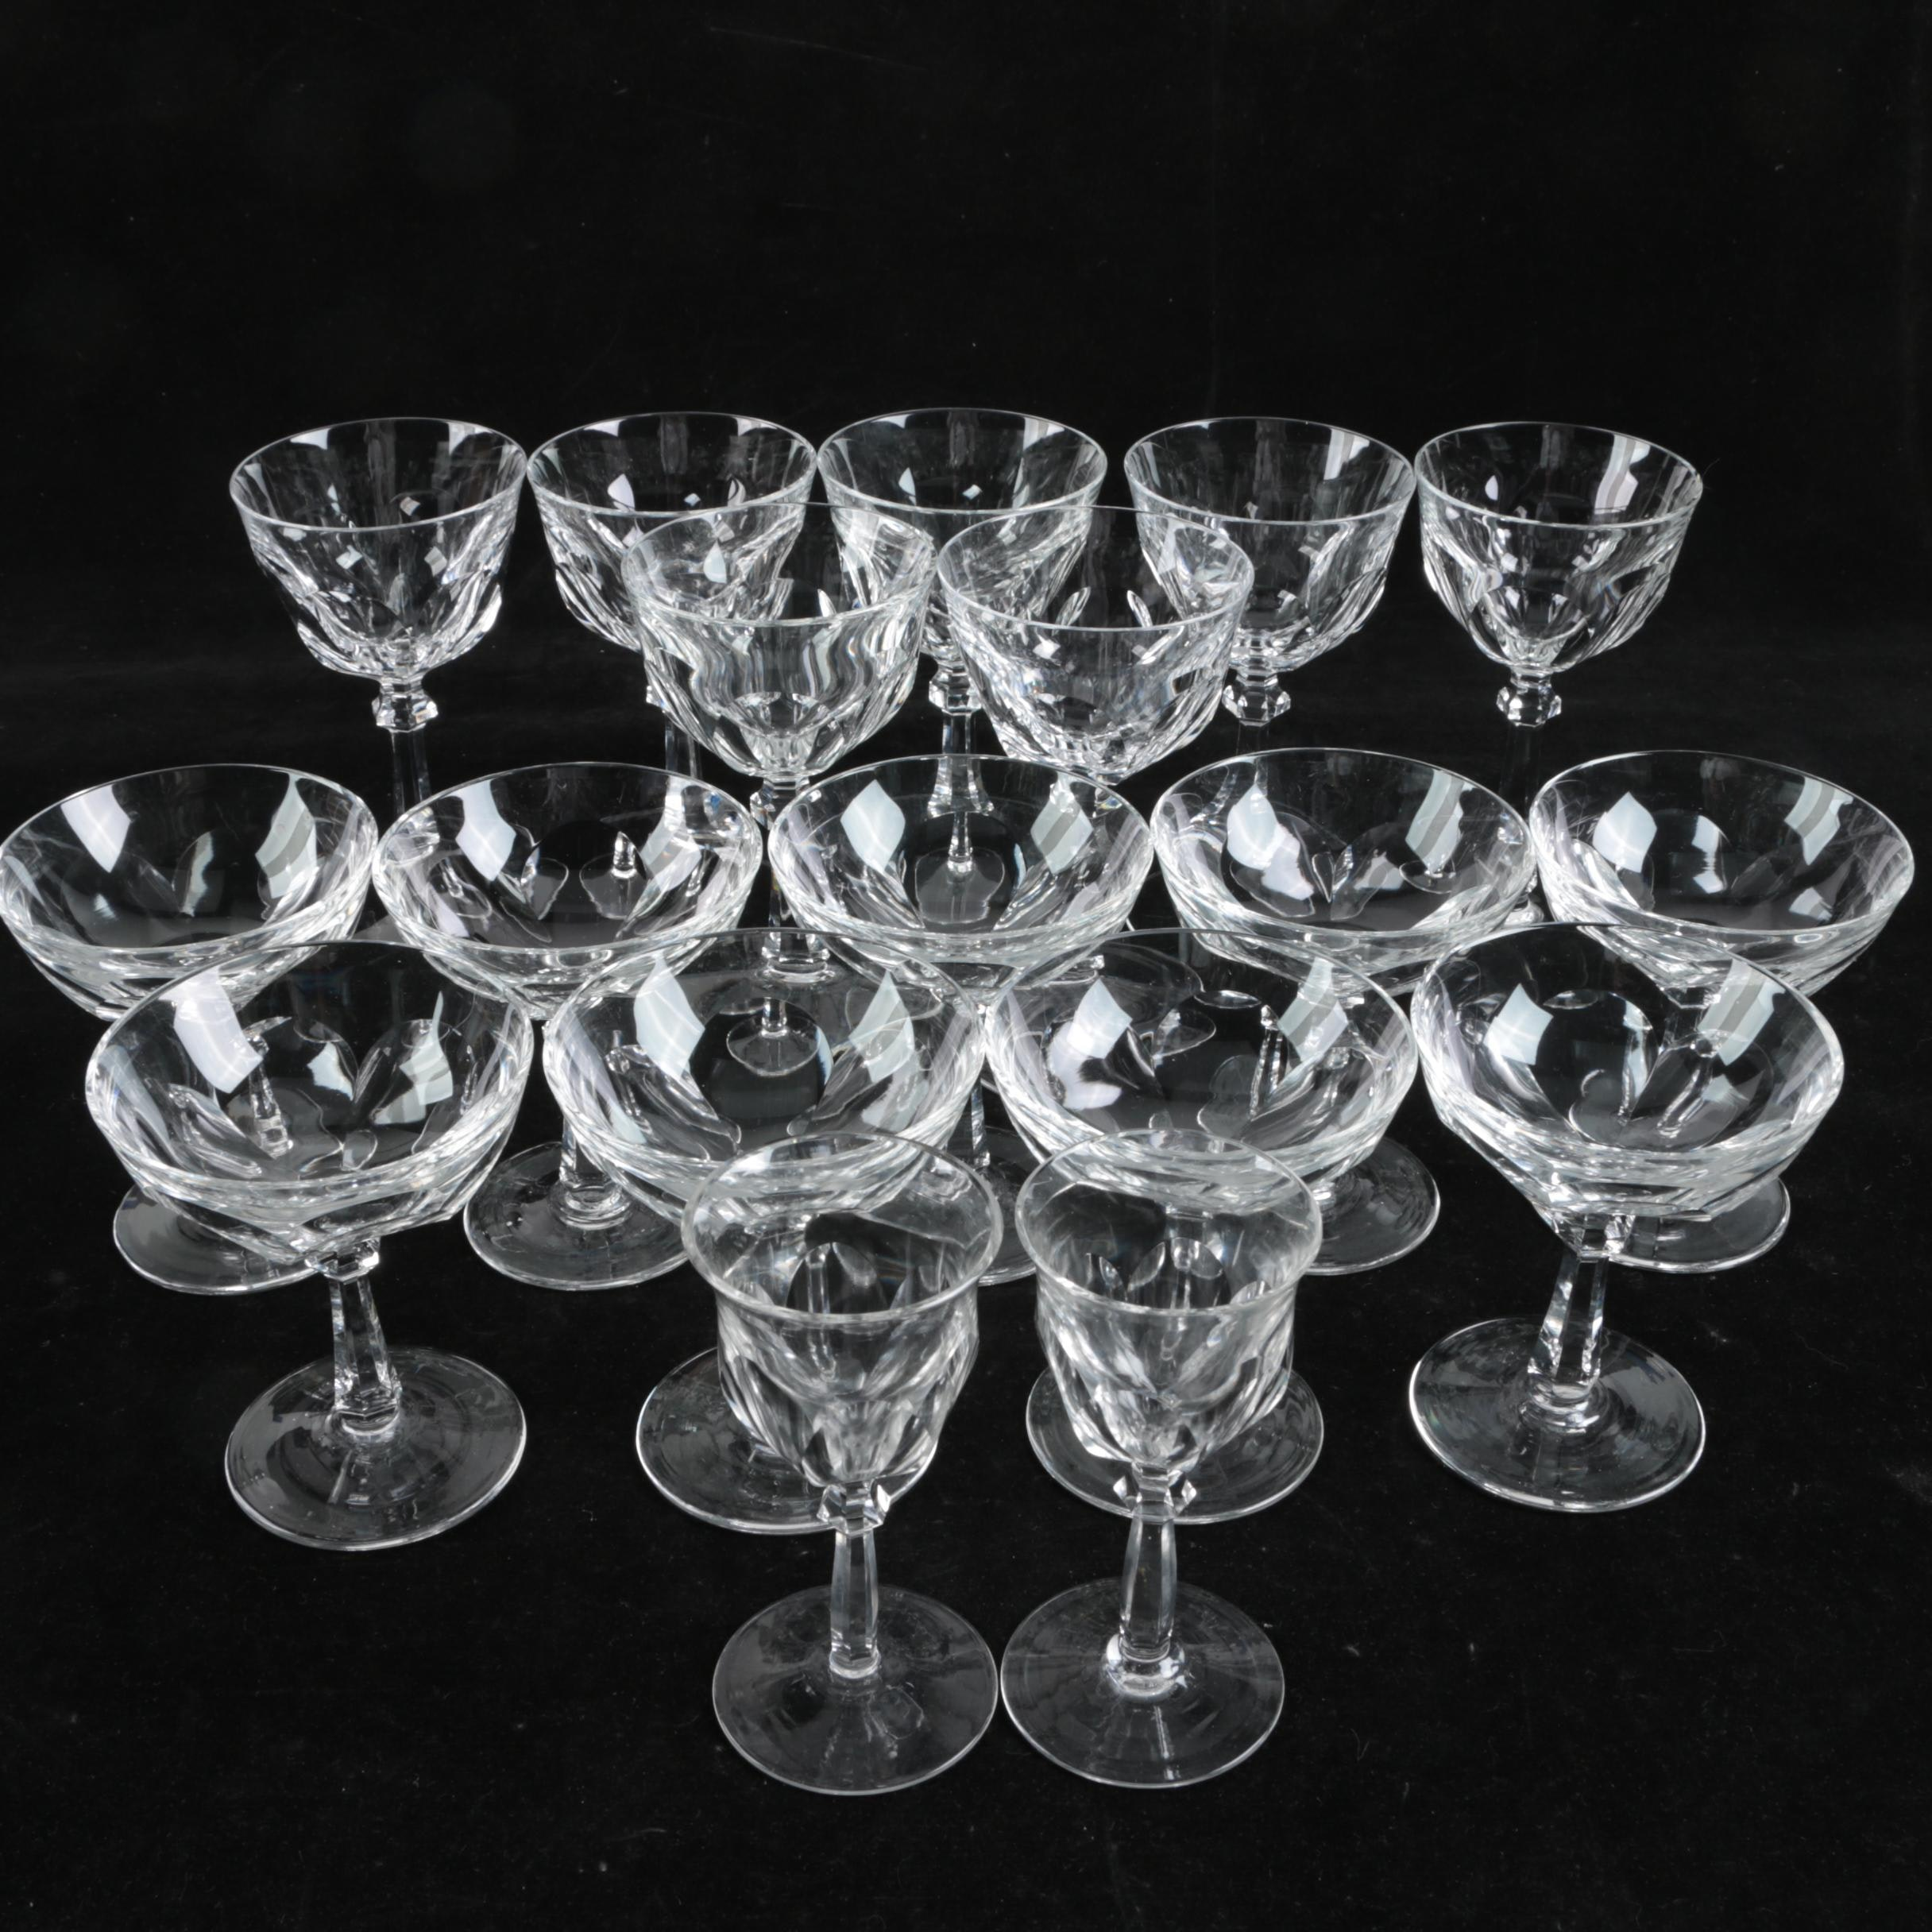 Crystal Stemware Collection